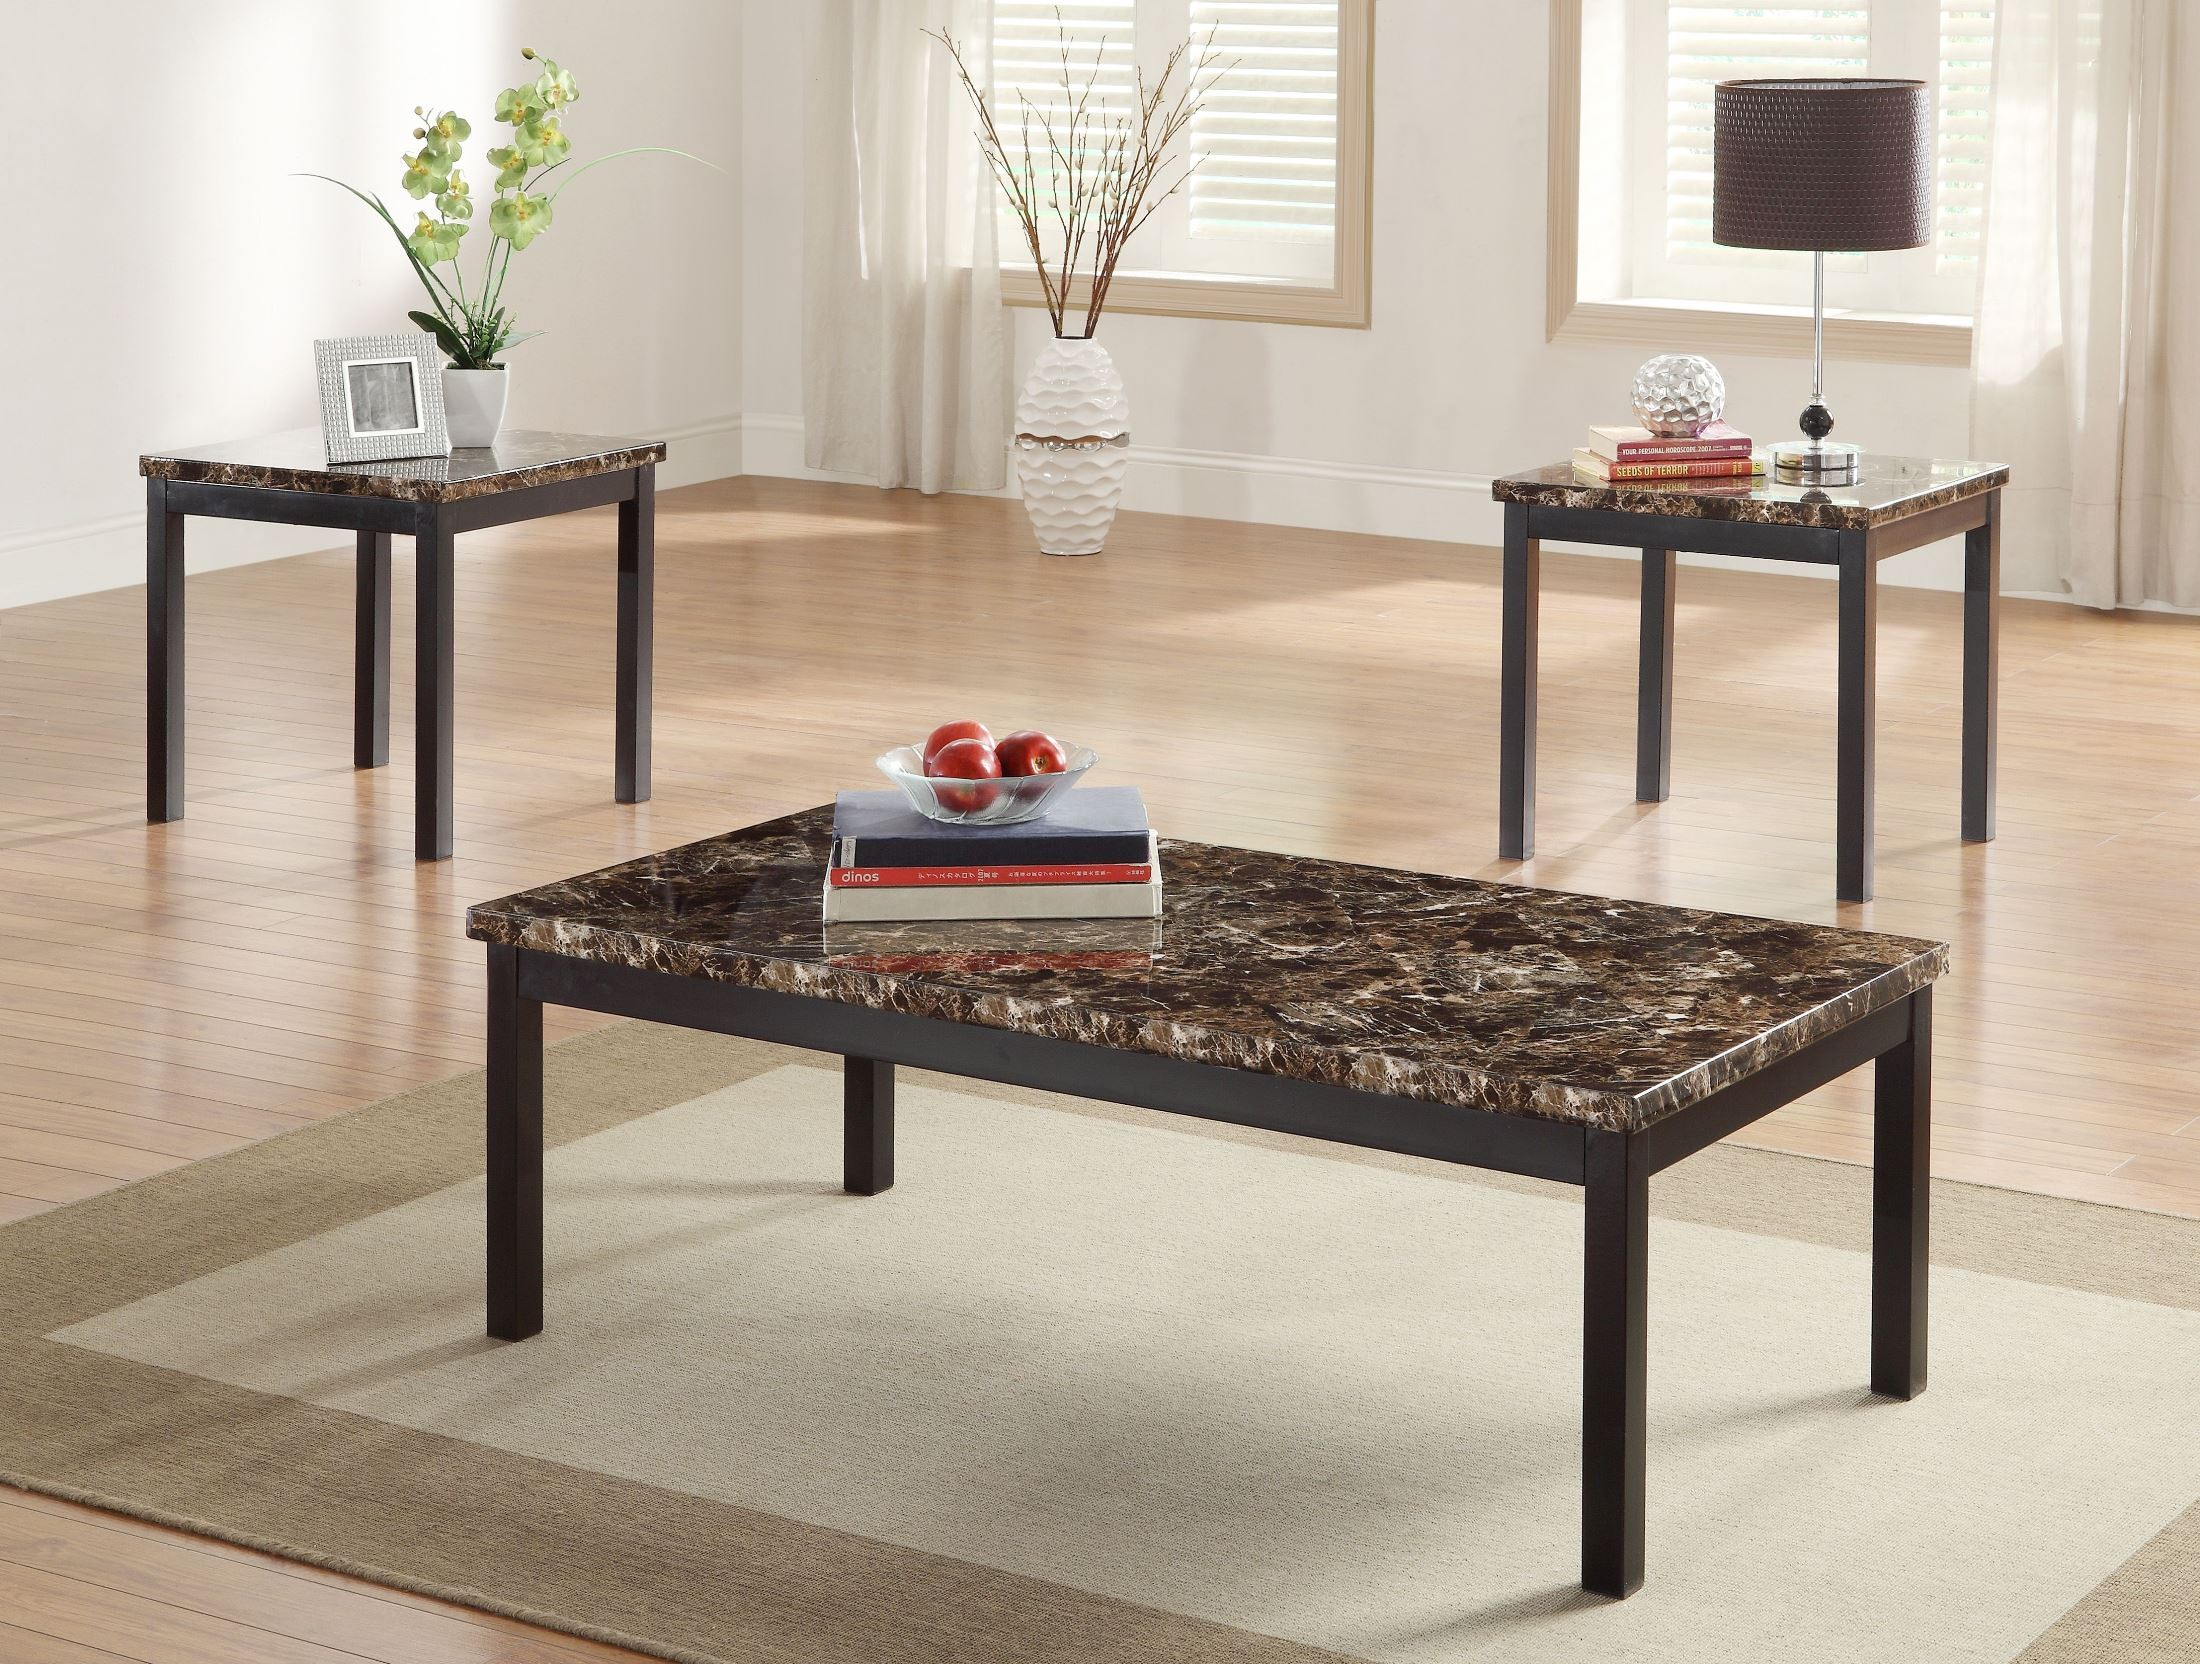 Tempe 3 Piece Occasional Table Set From Homelegance 2601